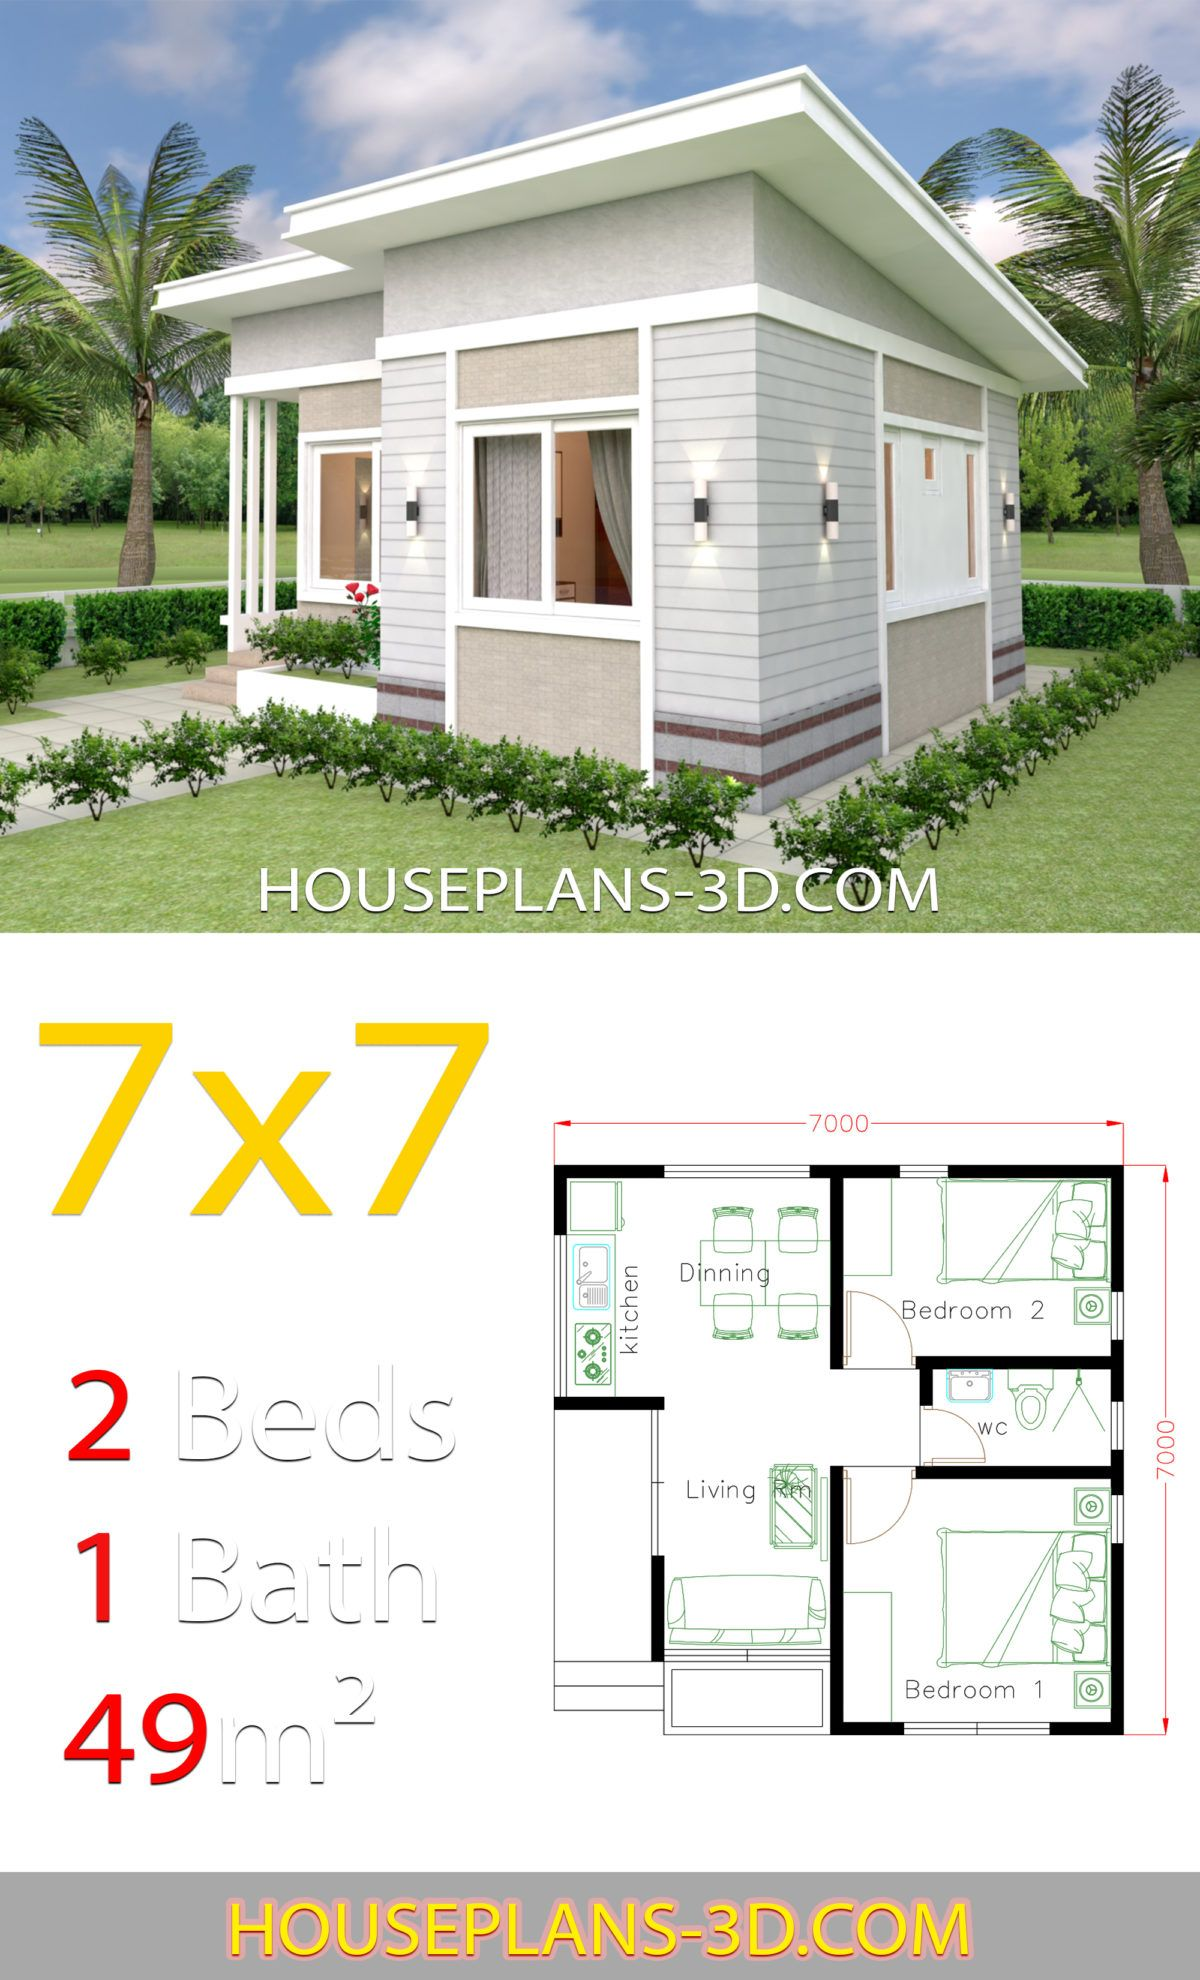 Small House Design Plans 7x7 with 2 Bedrooms - House Plans ...